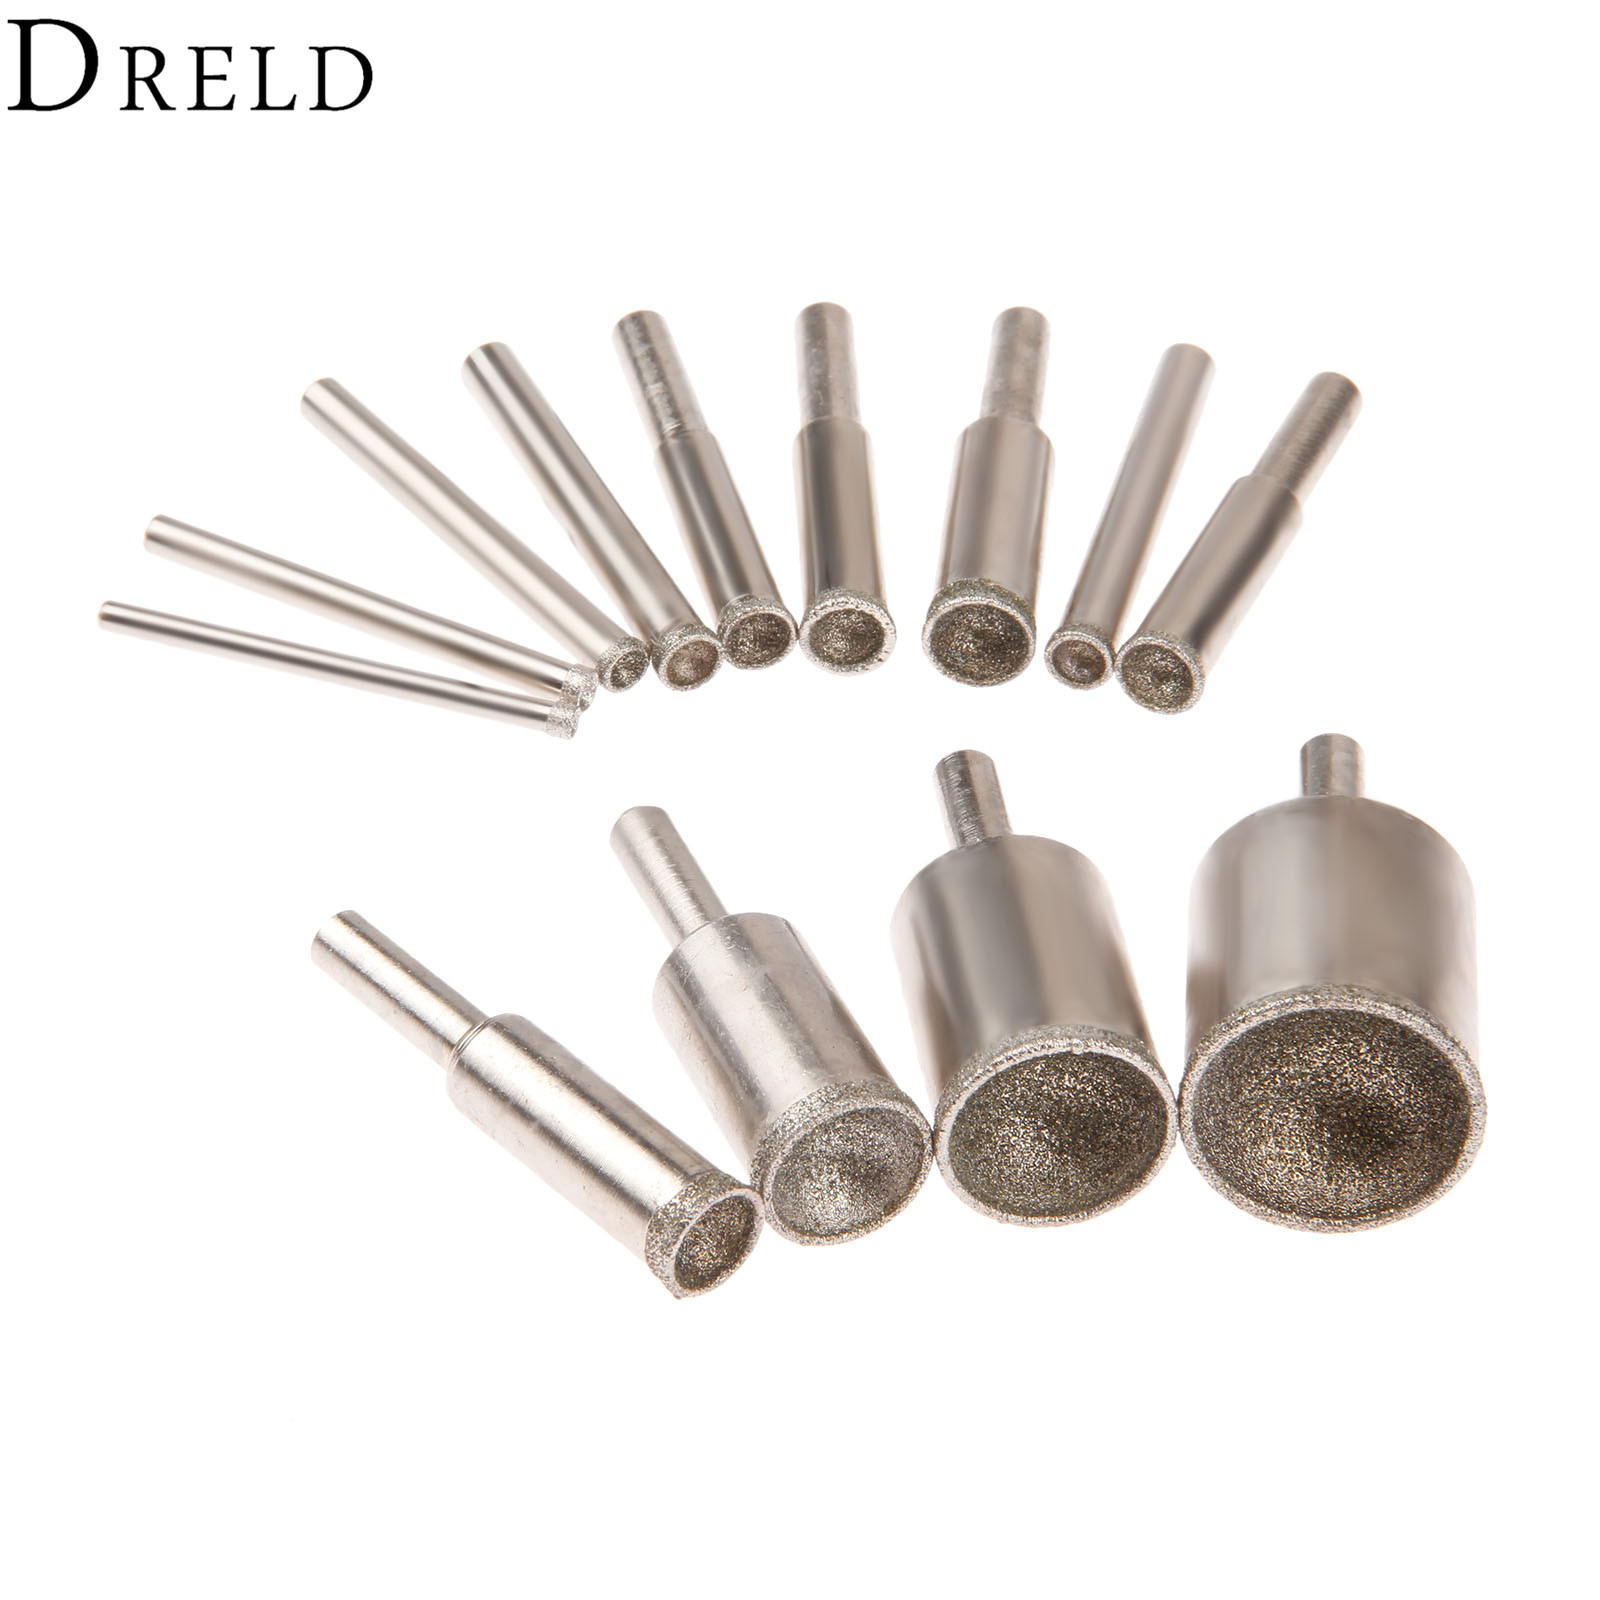 DRELD 1Pc Diamond Mounted Point 8-25mm Beads Shaping Spherical Concave Carving Grinding Head Shaping Tool Grit 80 Coarse Sand